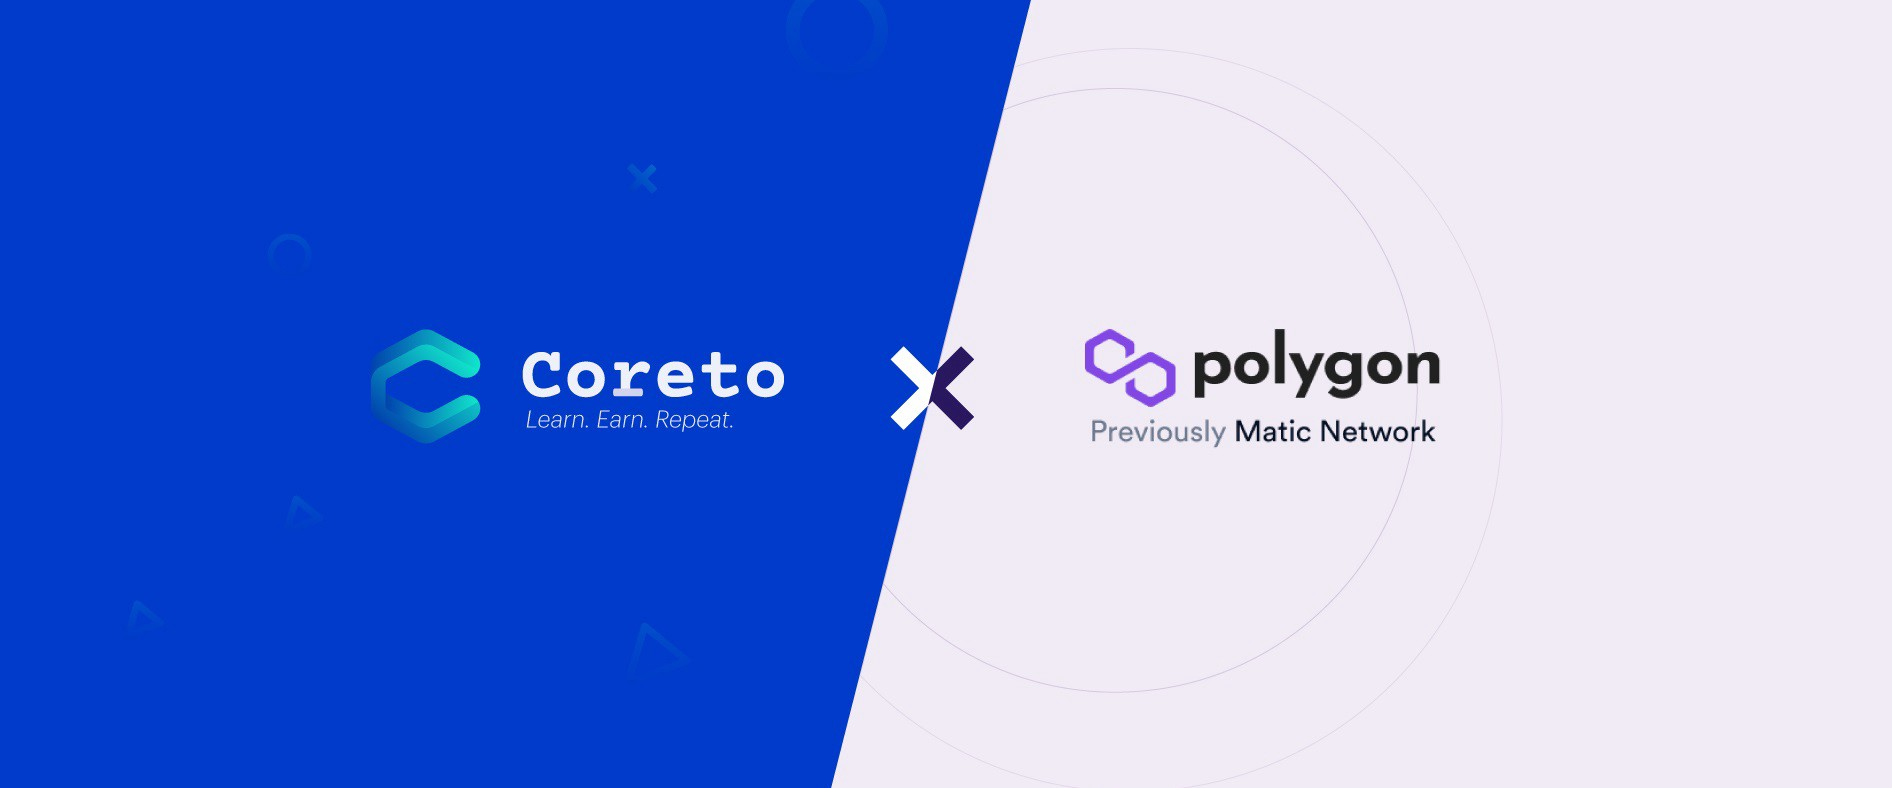 Coreto partners with Polygon (Matic network)